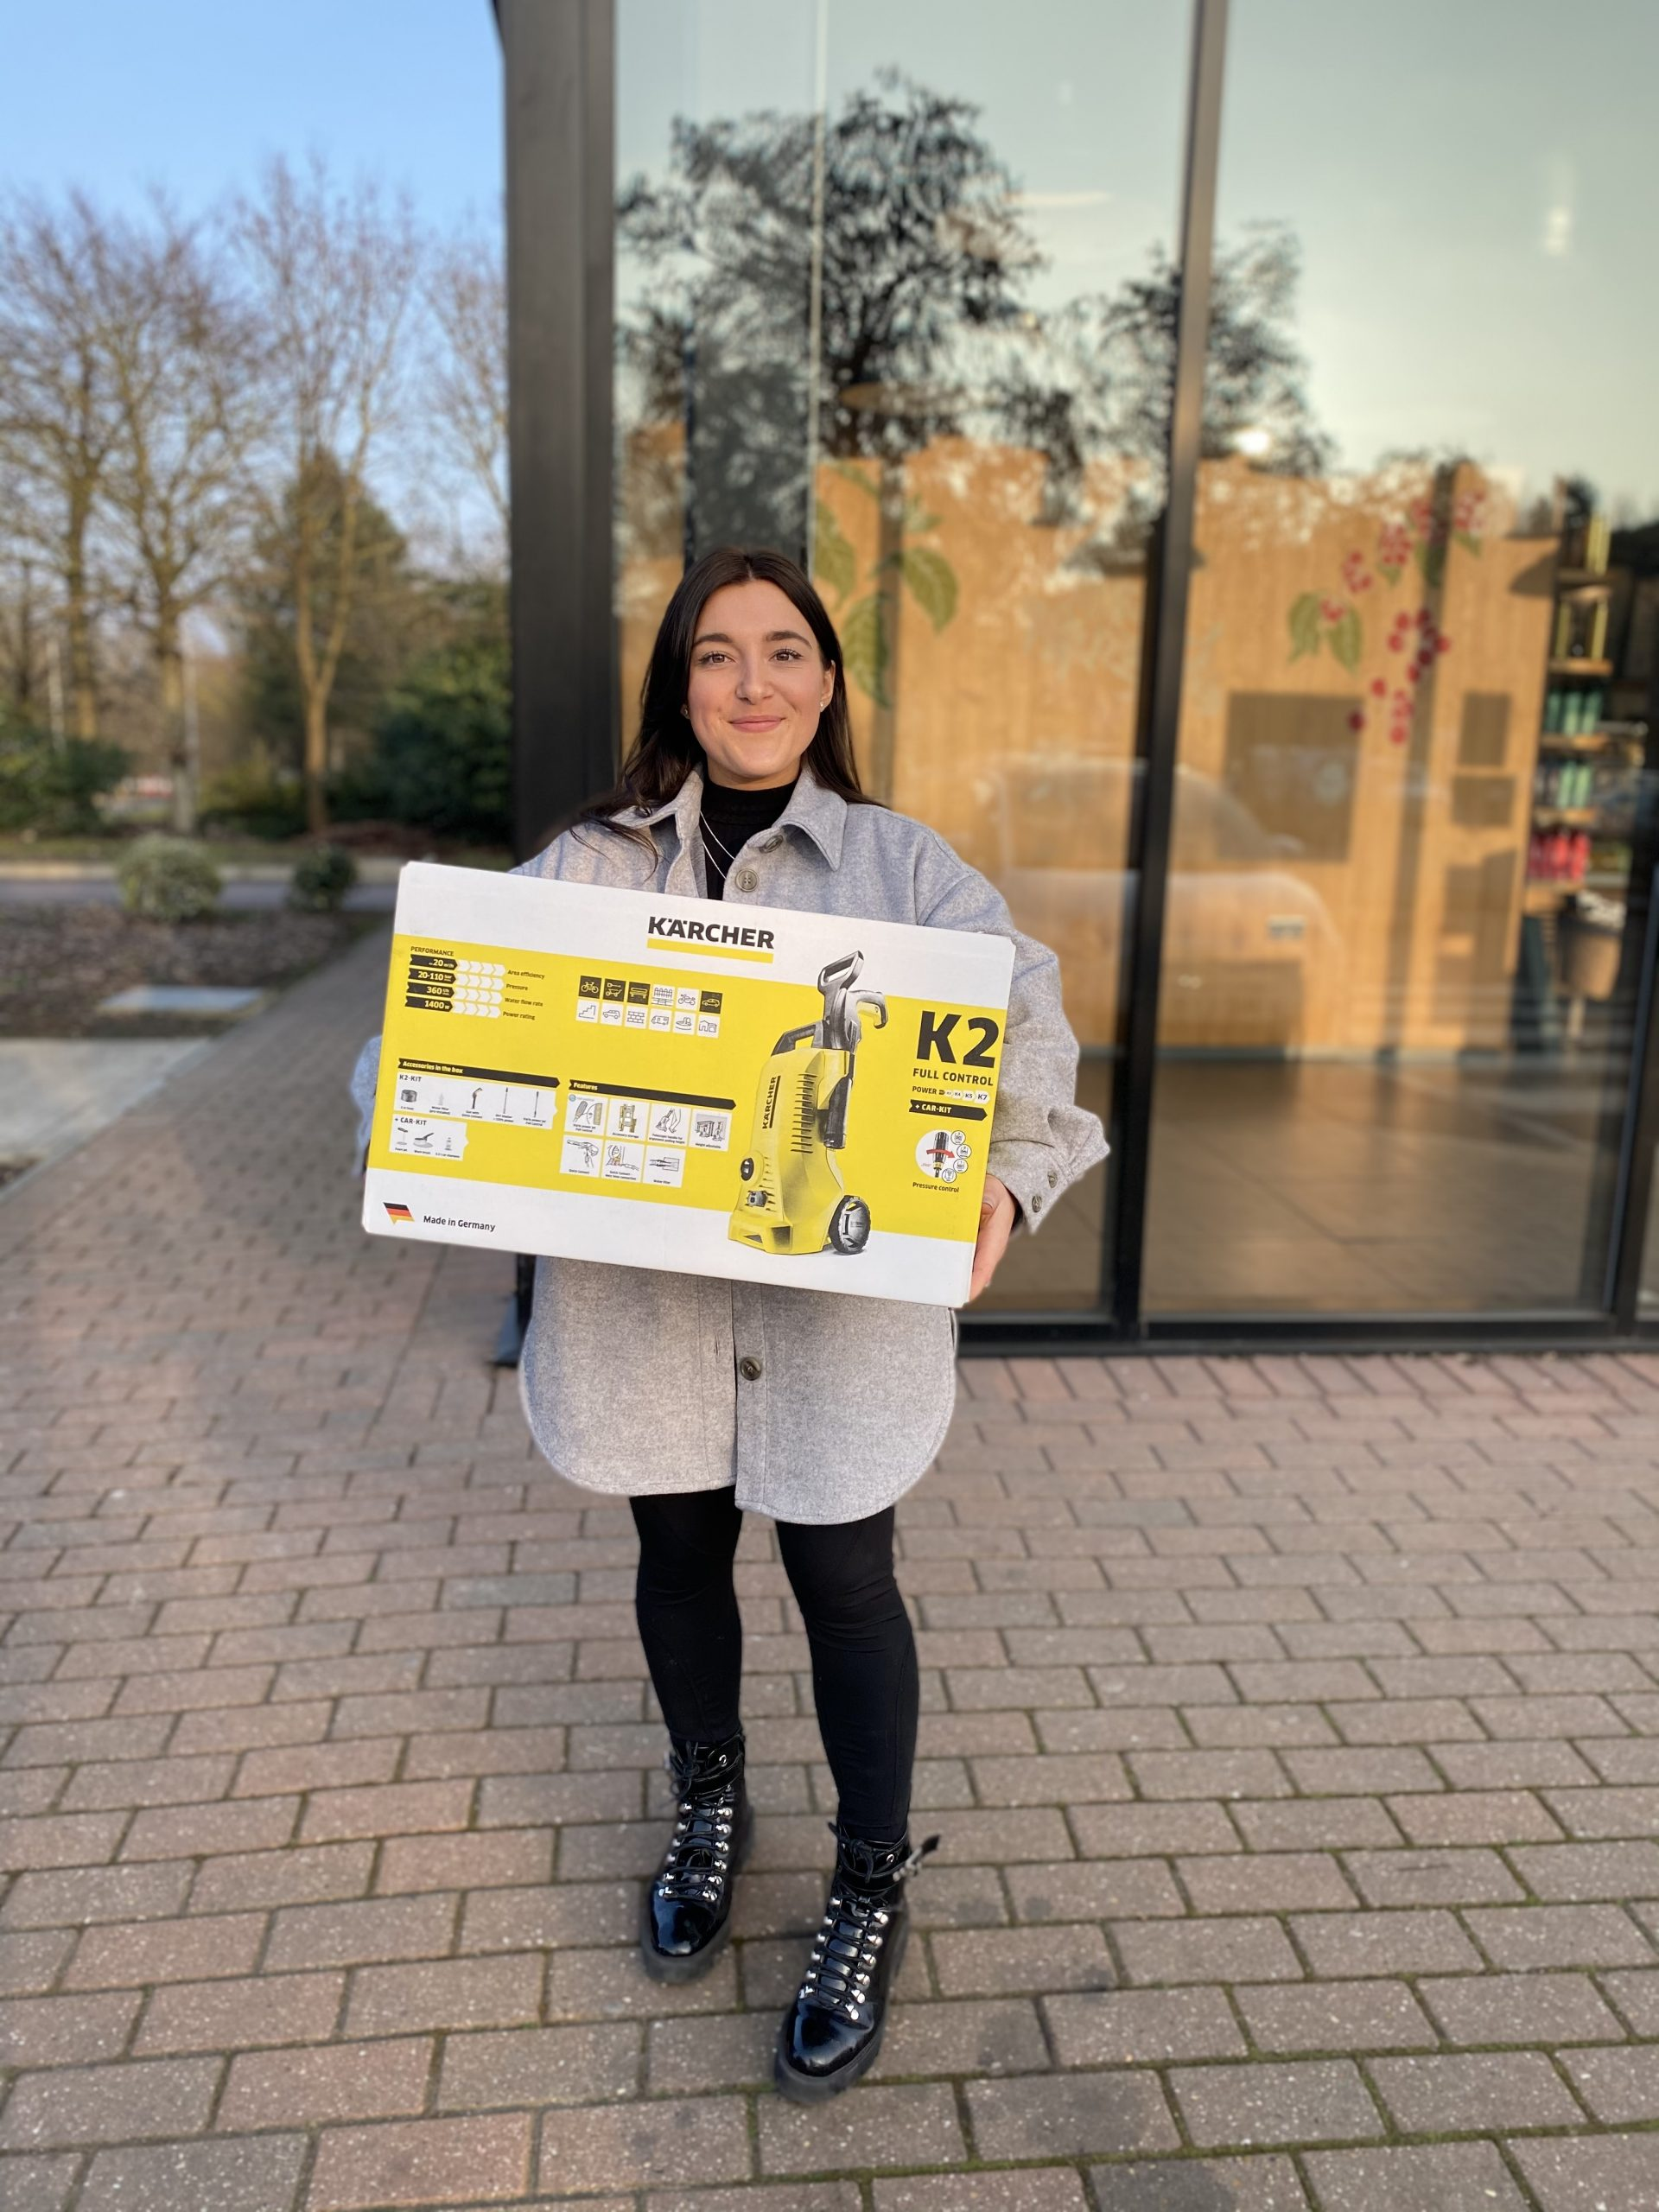 You are currently viewing Karcher K2 Full Control Car Pressure Washer